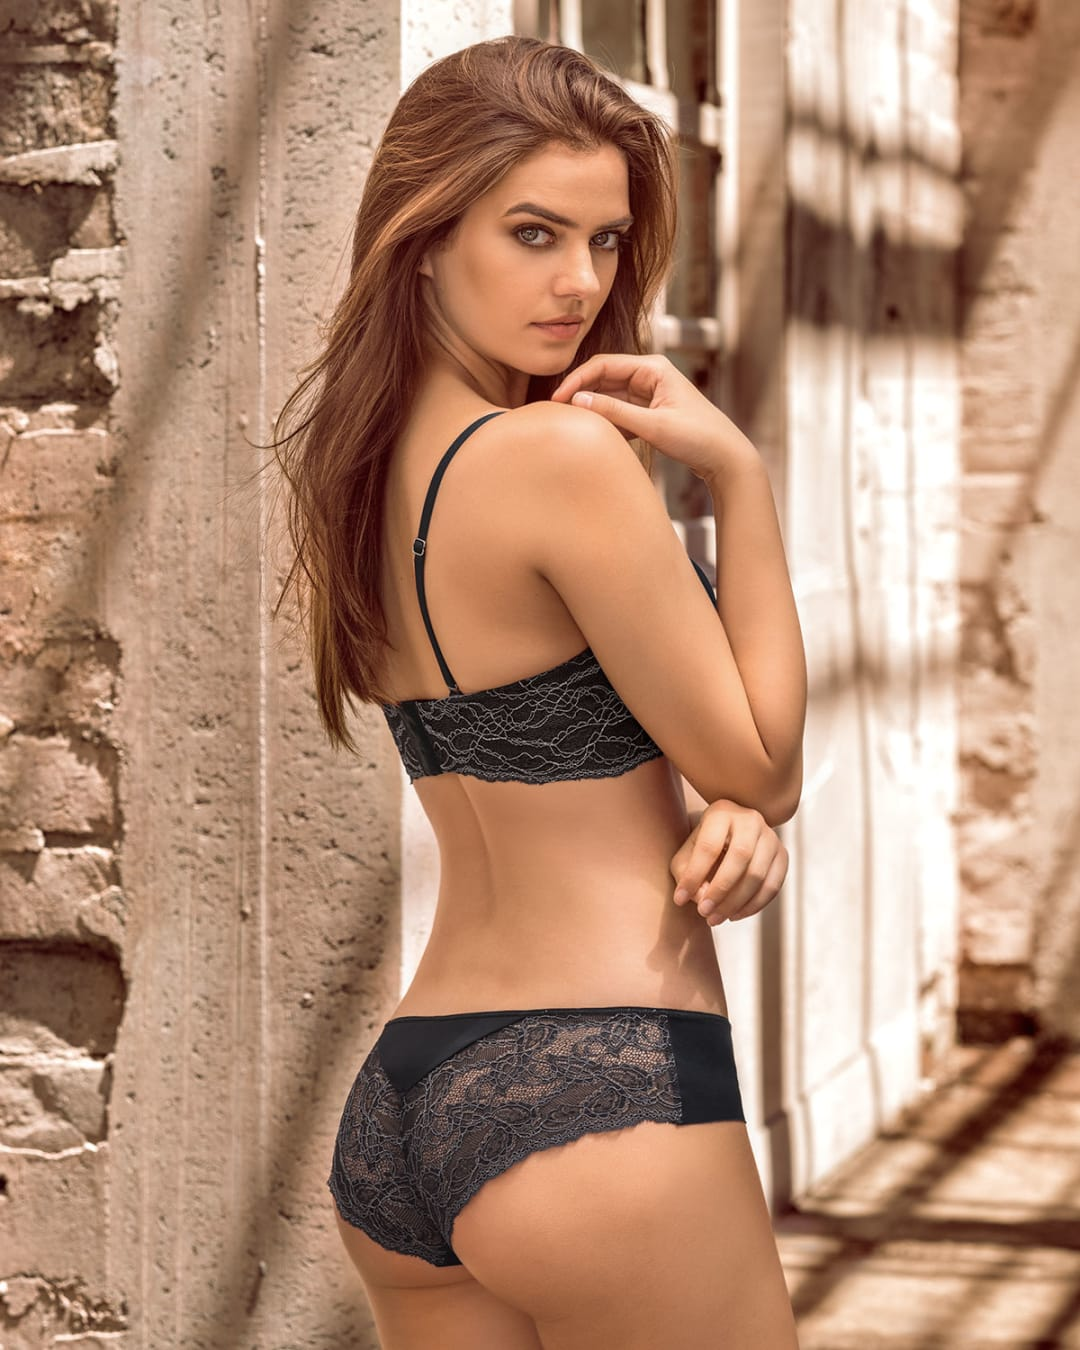 Lace Panties Ass Pictures